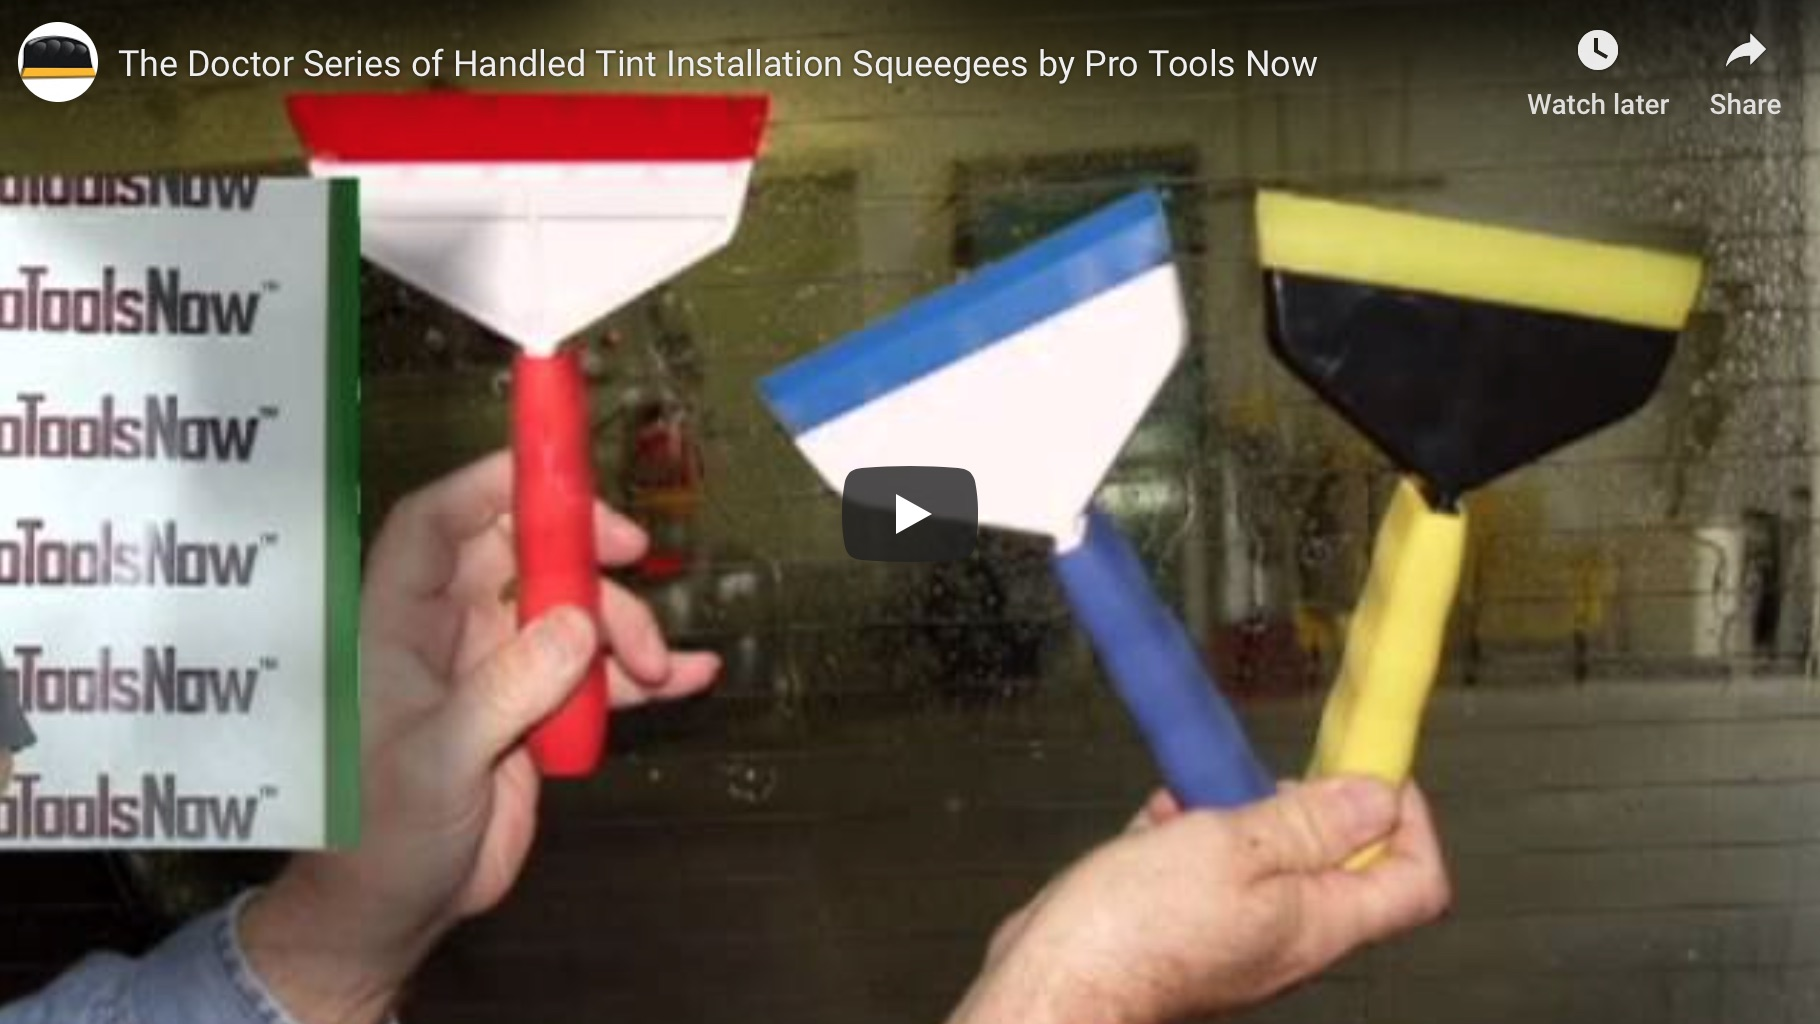 Go Doctor Series of Handled Tint Installation Squeegees by Pro Tools Now